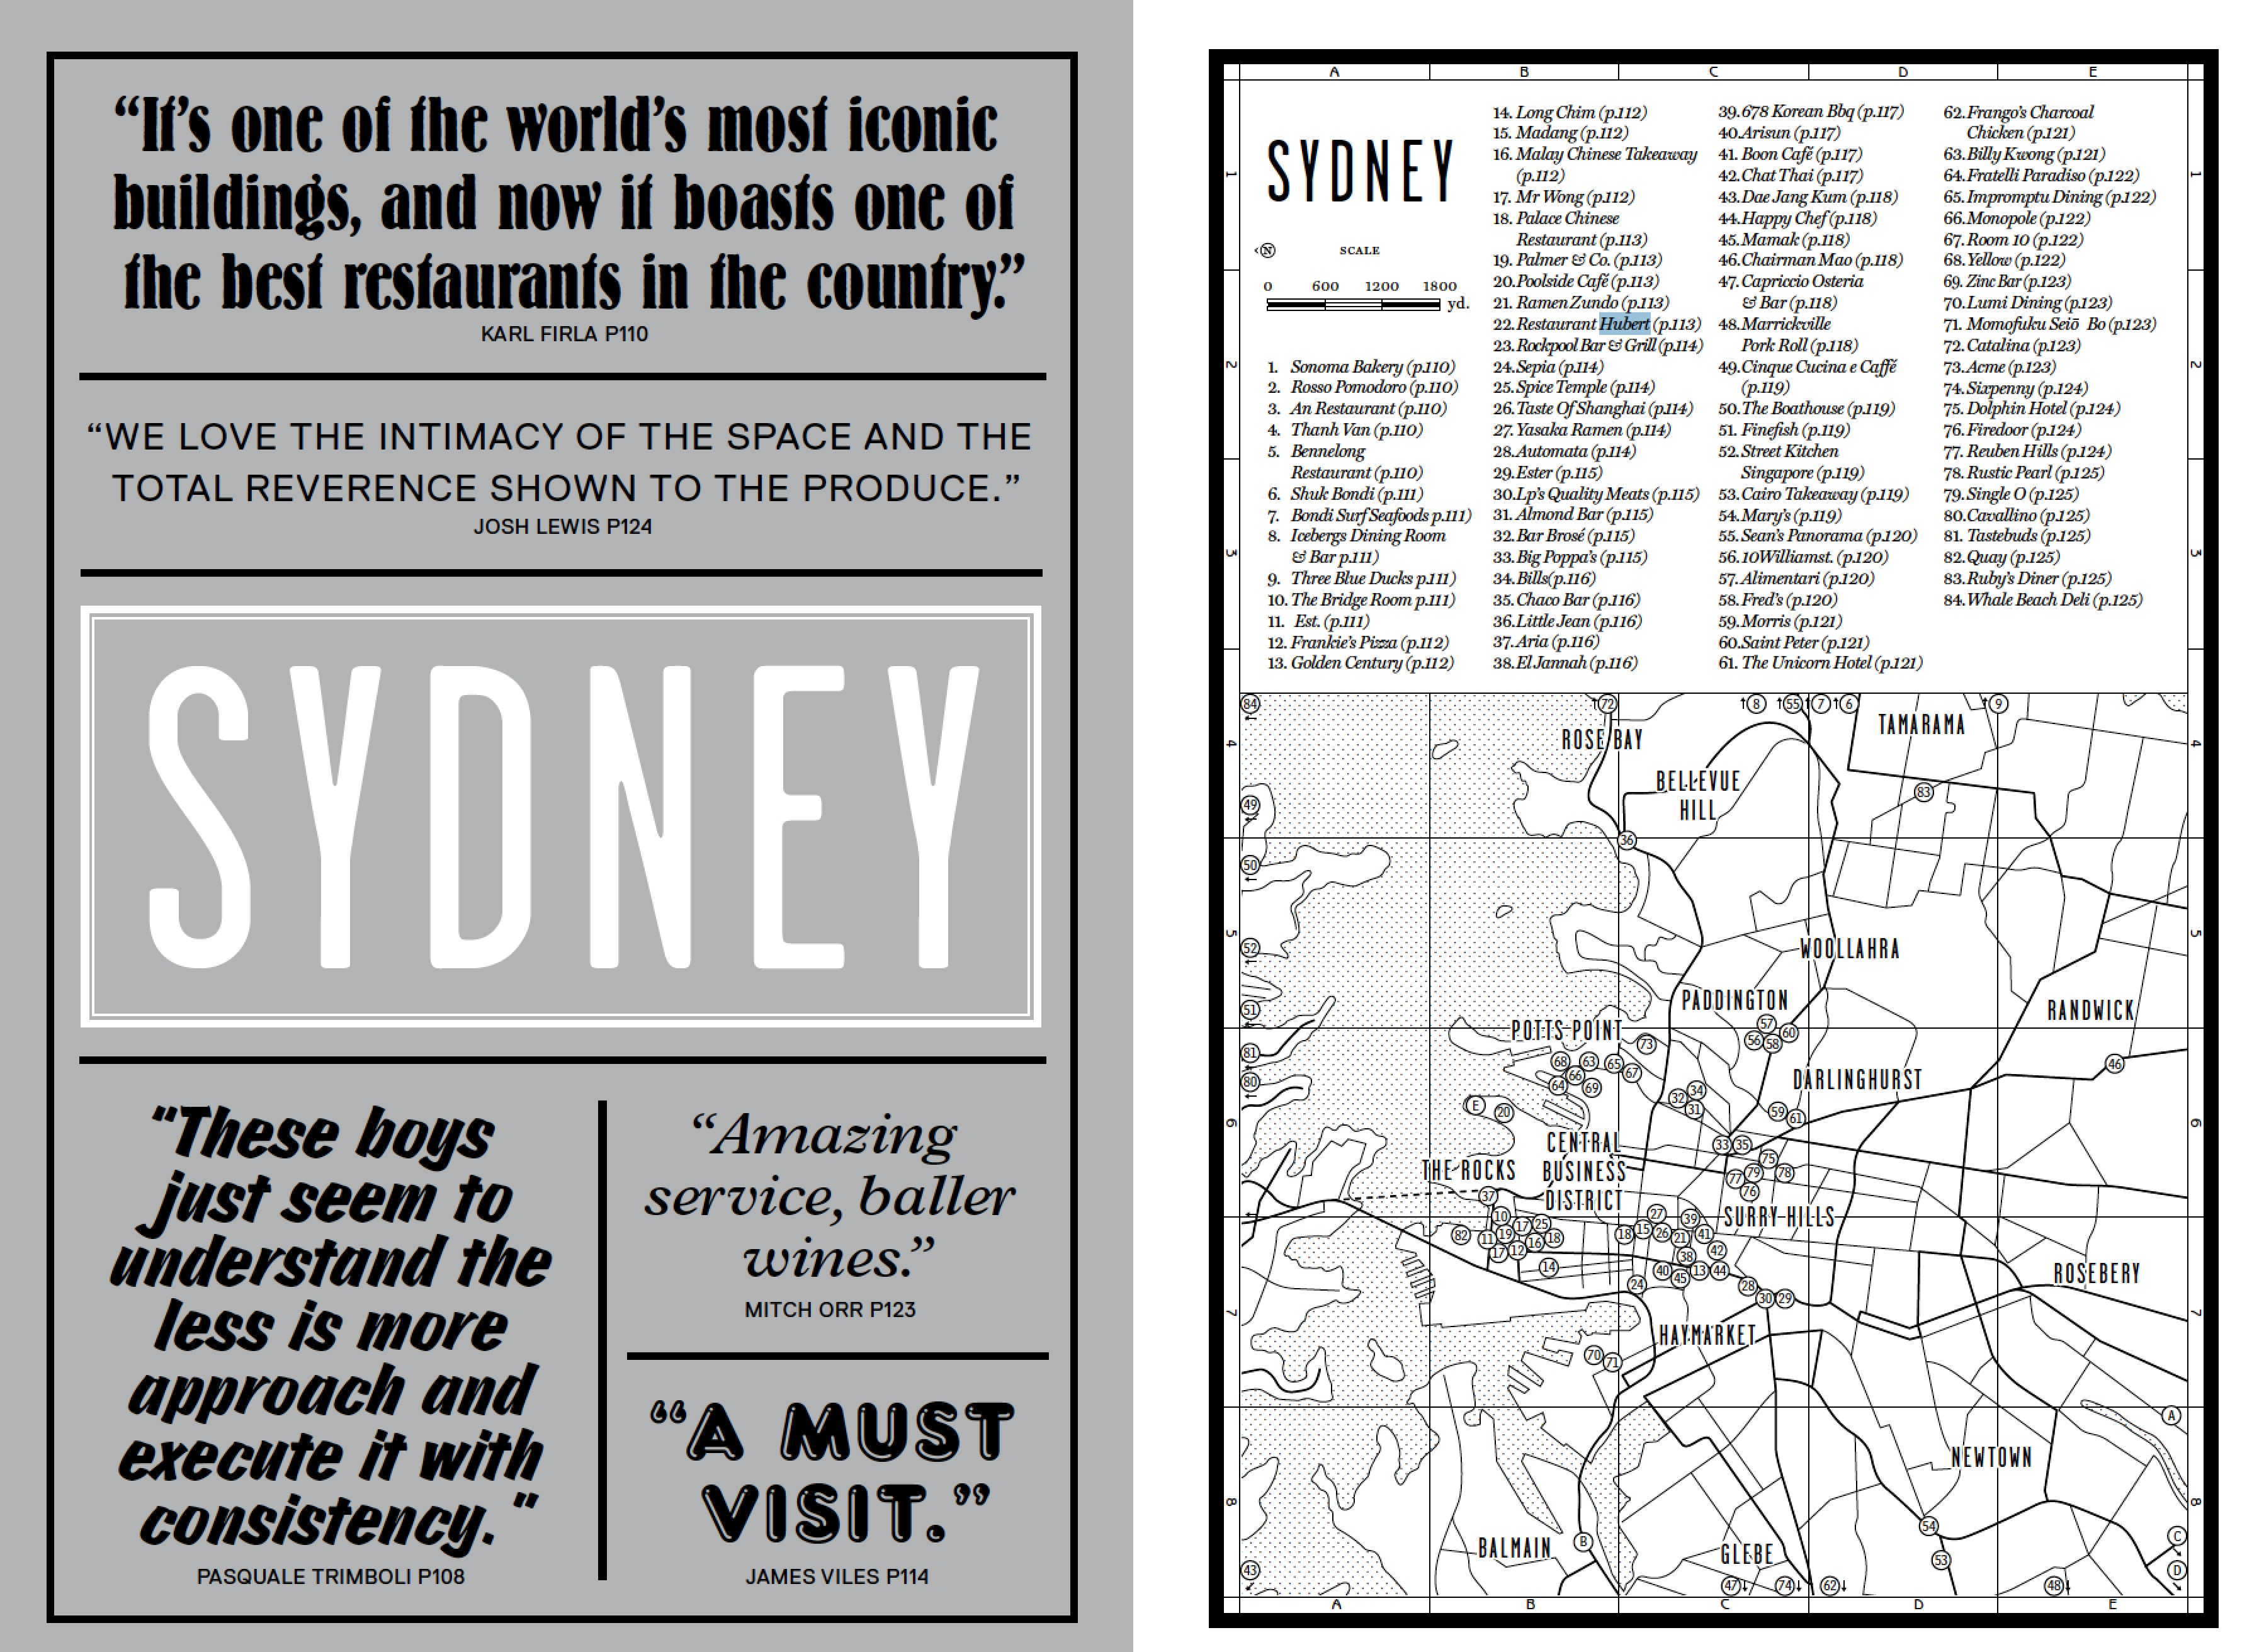 The Sydney introduction from our new book Where Chefs Eat